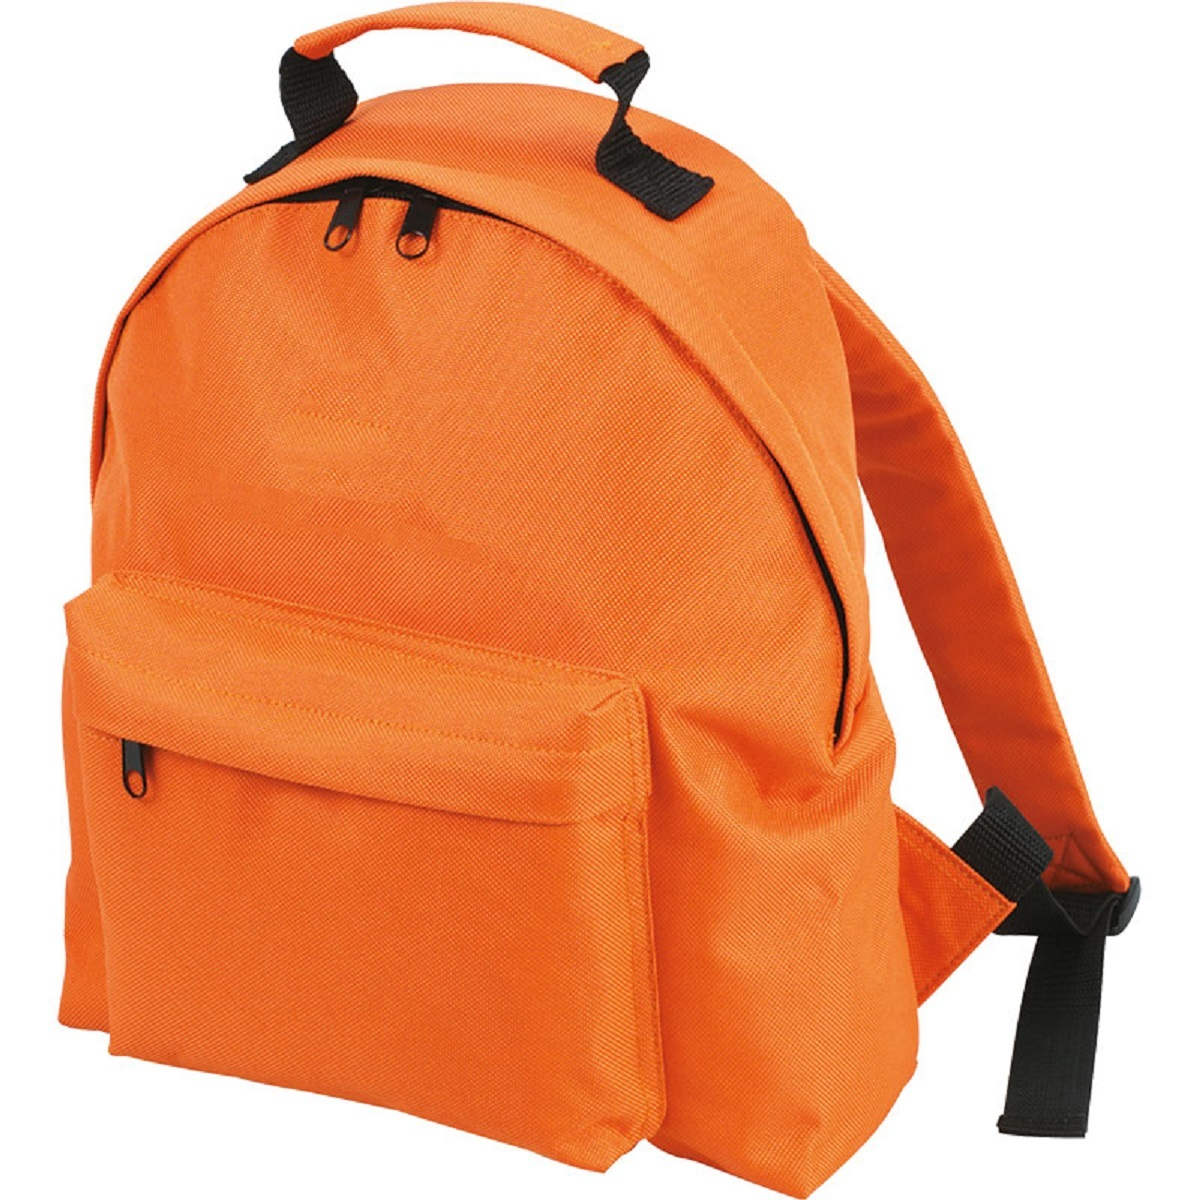 Sac à dos enfant - KIDS Backpack 1802722 - orange